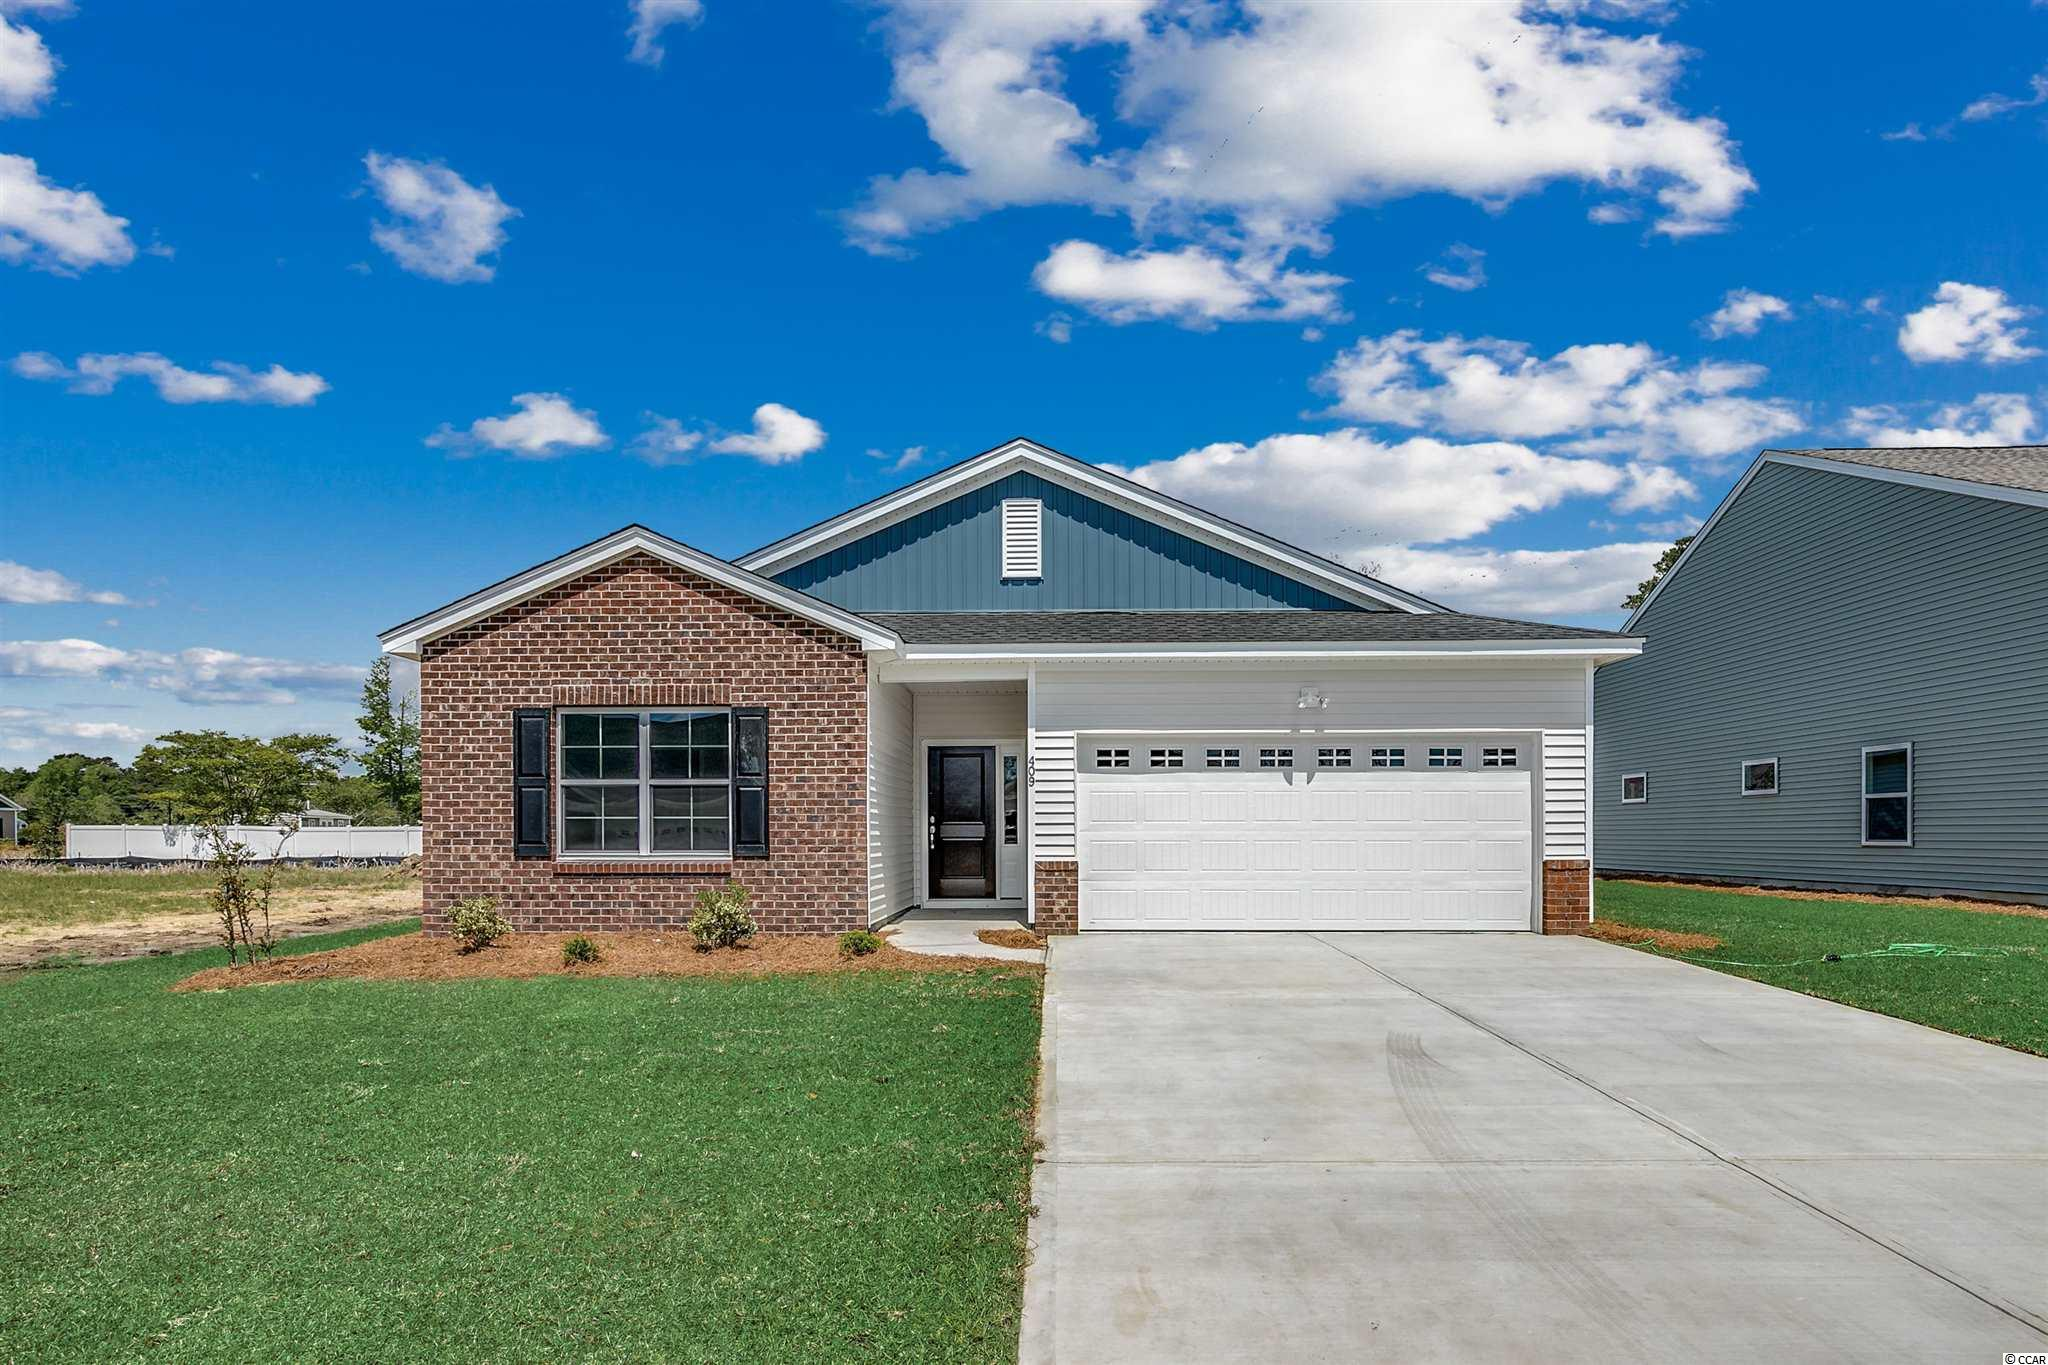 MOVE IN NOW The Durham is our new single story home plan that is sure to please! 3 beds and 2 baths, bedrooms 2 and 3 are oversized at 14' x 11', each with a walk-in closet! The spacious Primary bedroom and bath leads to a large walk-in closet too! This split-bedroom design has the open floorplan layout everyone is looking for. The Family Room will have a Boxed Tray ceiling. Enter from the garage and you're greeted by our Bench and Cubbies, perfect for dropping off coats, handbags, and shoes.  Ask about our current incentives and closing cost assistance!